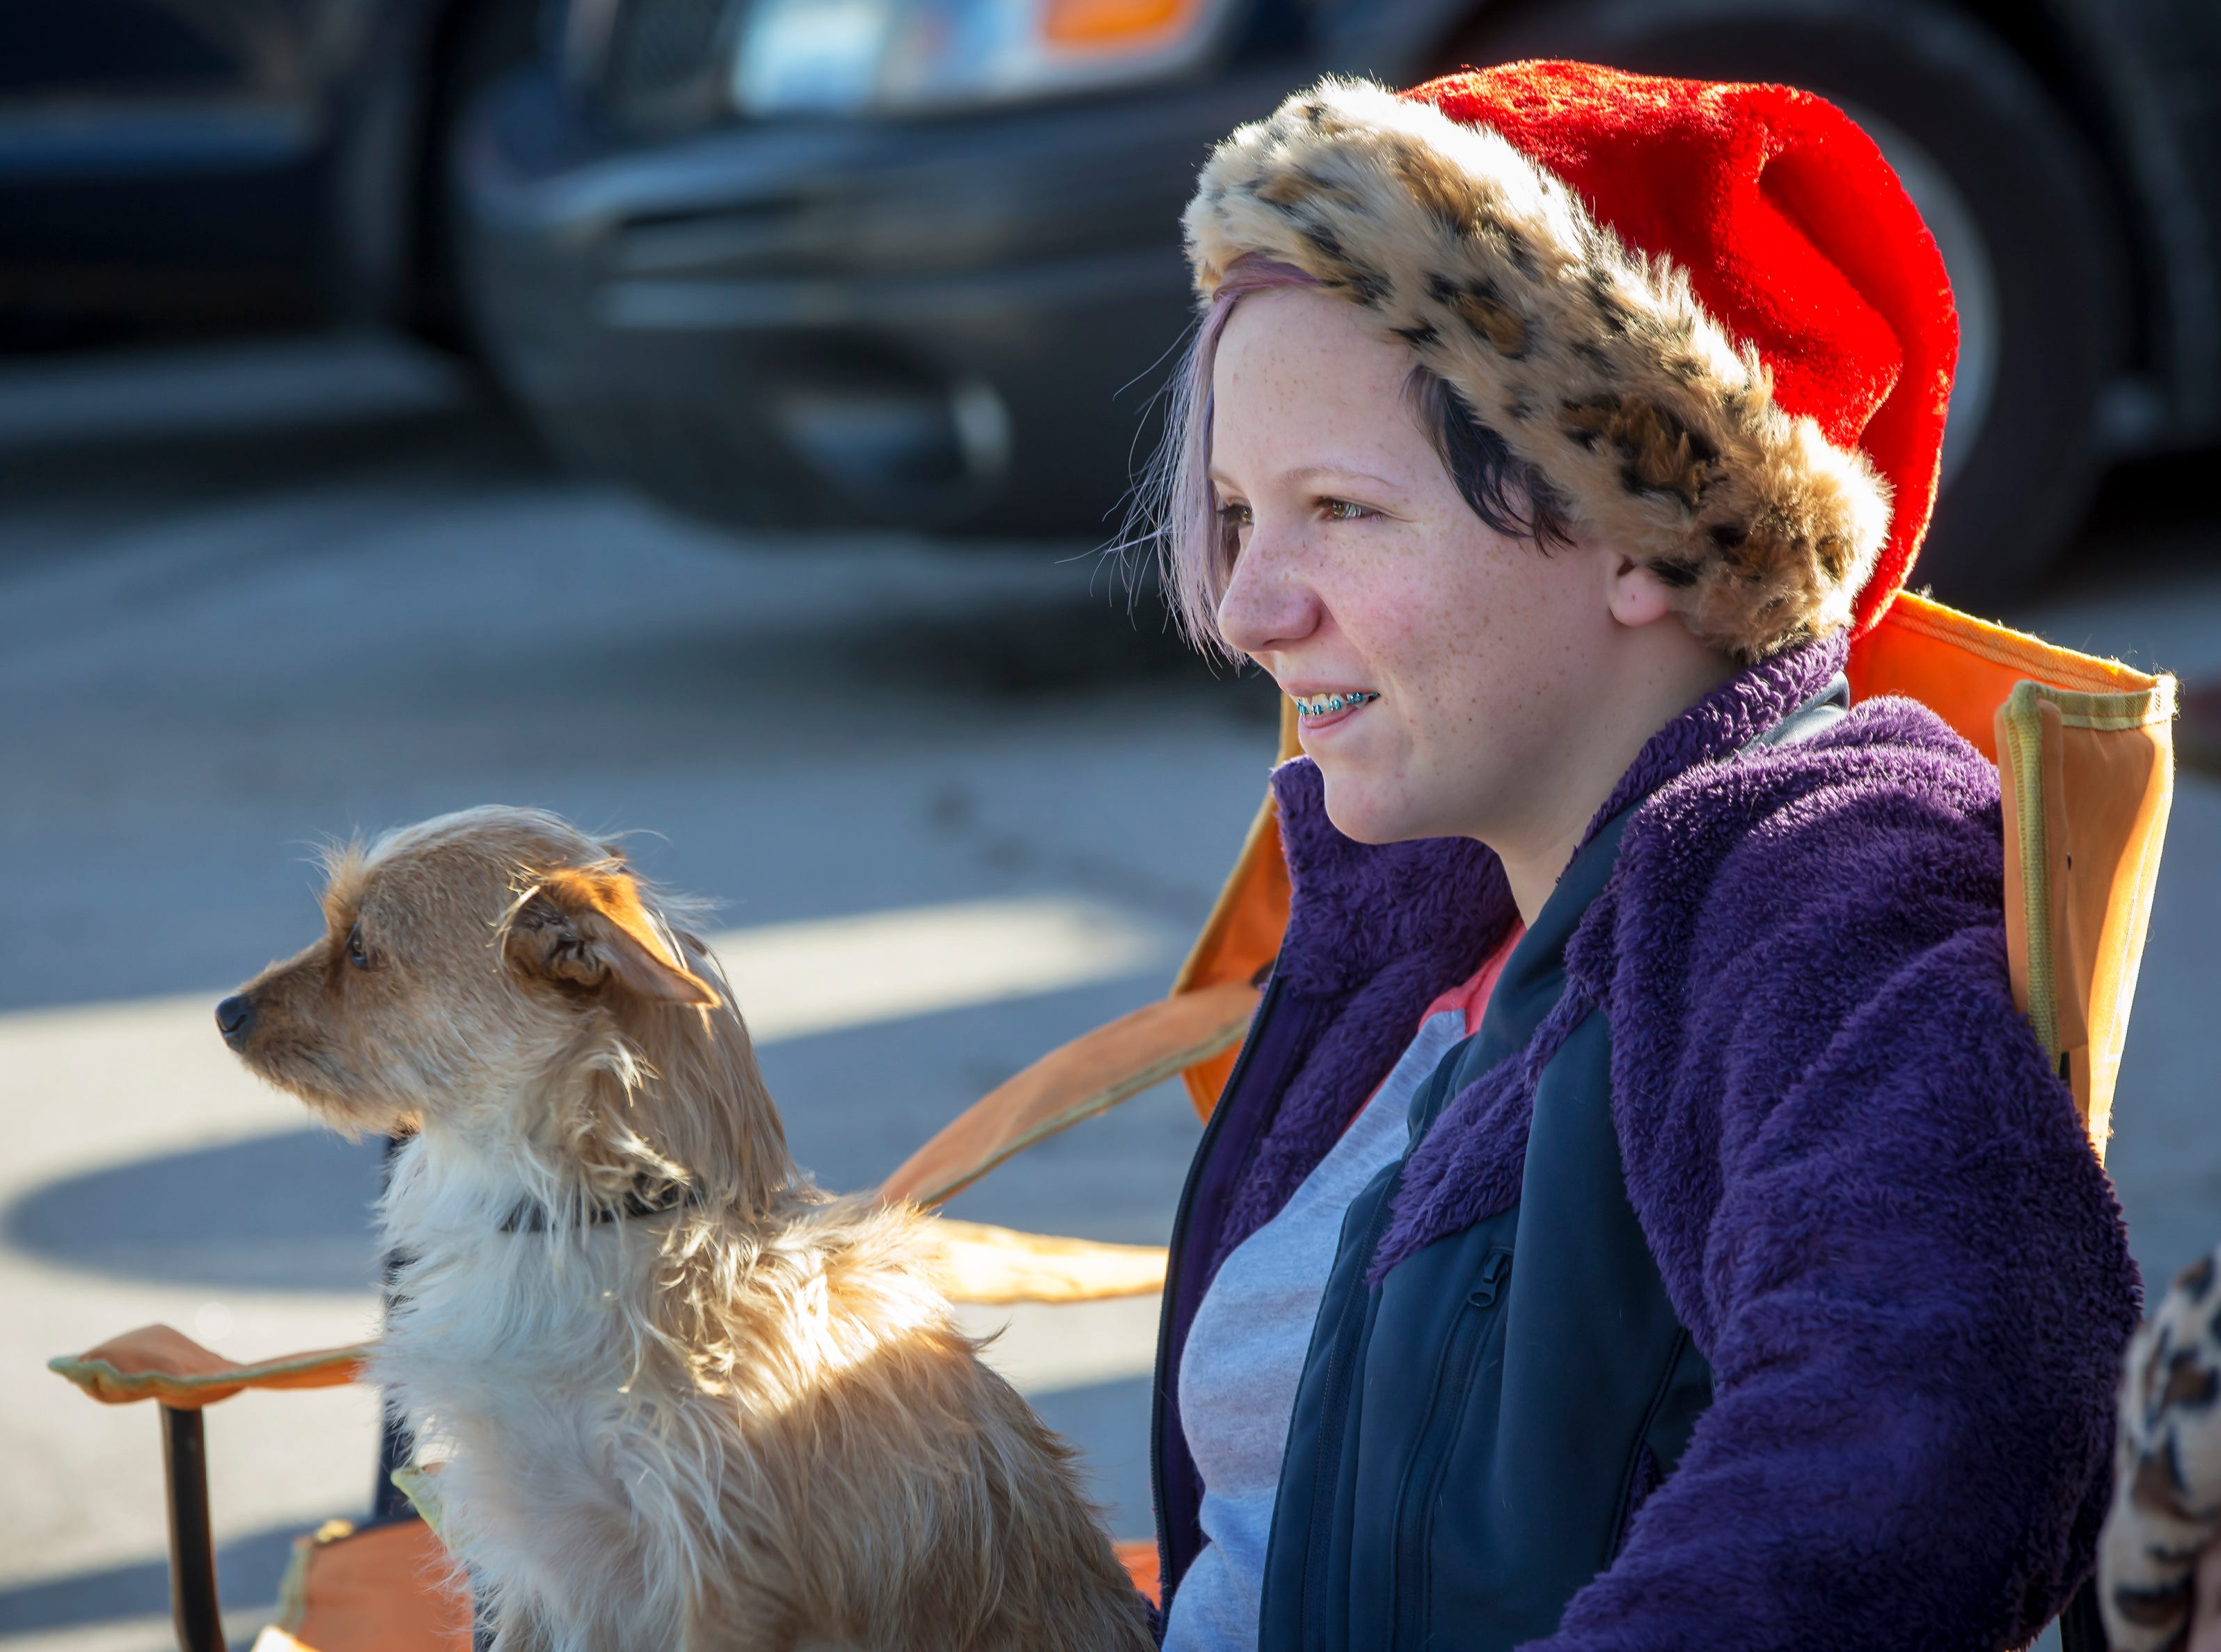 Keira Wagner and dog Peanut wait for the Smyrna Christmas parade to start.